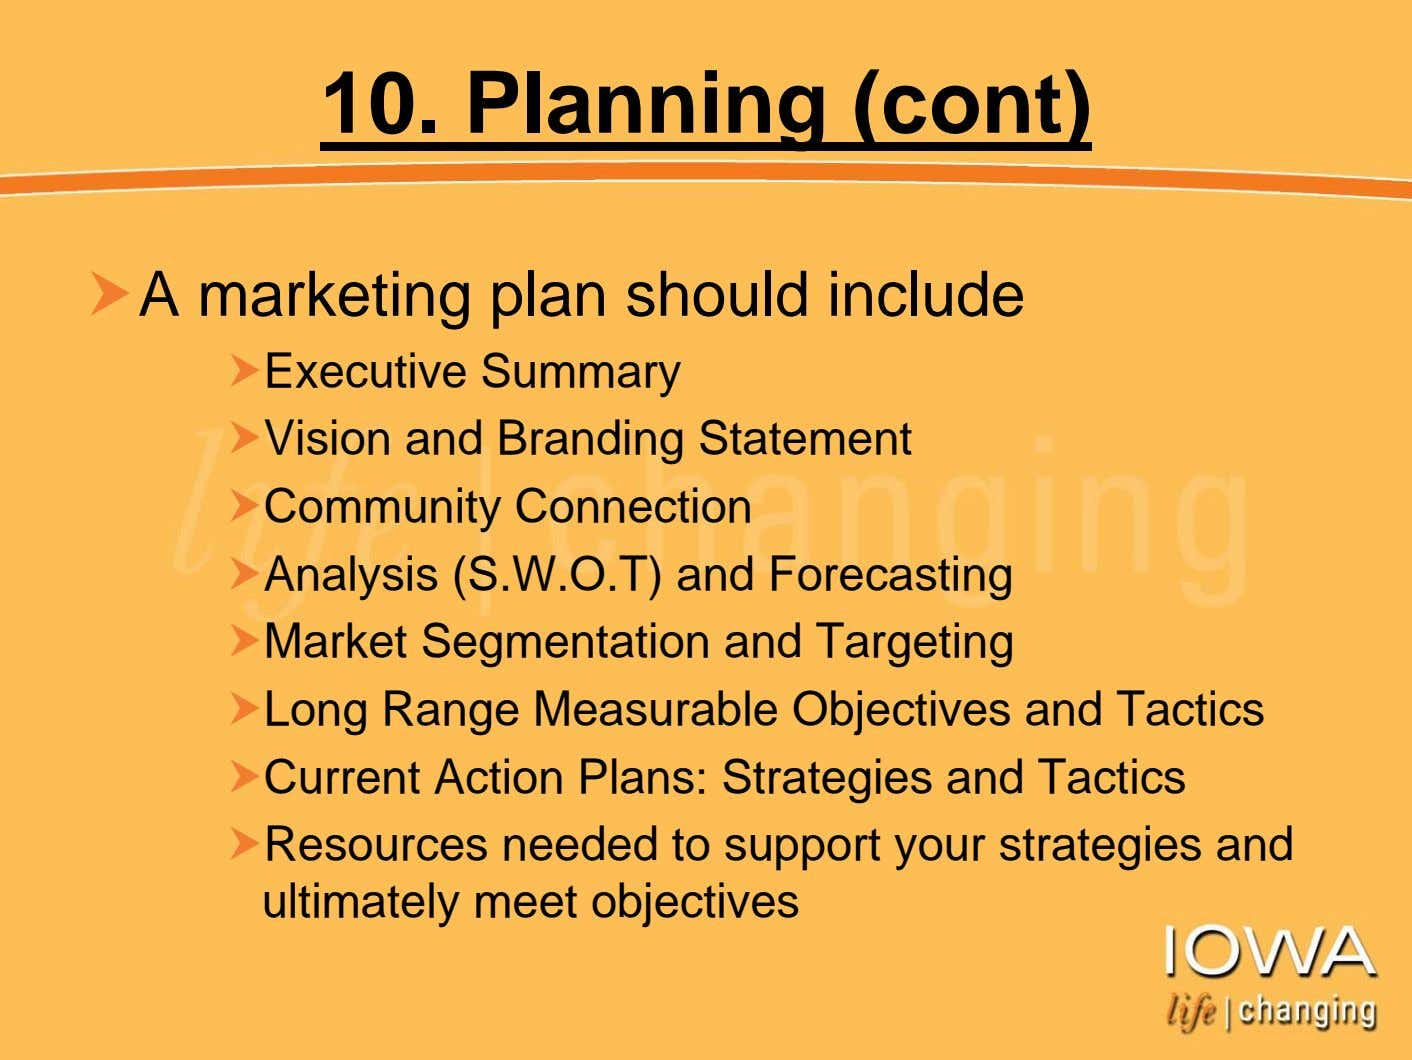 10. Planning (cont) A marketing plan should include Executive Summary Vision and Branding Statement Community